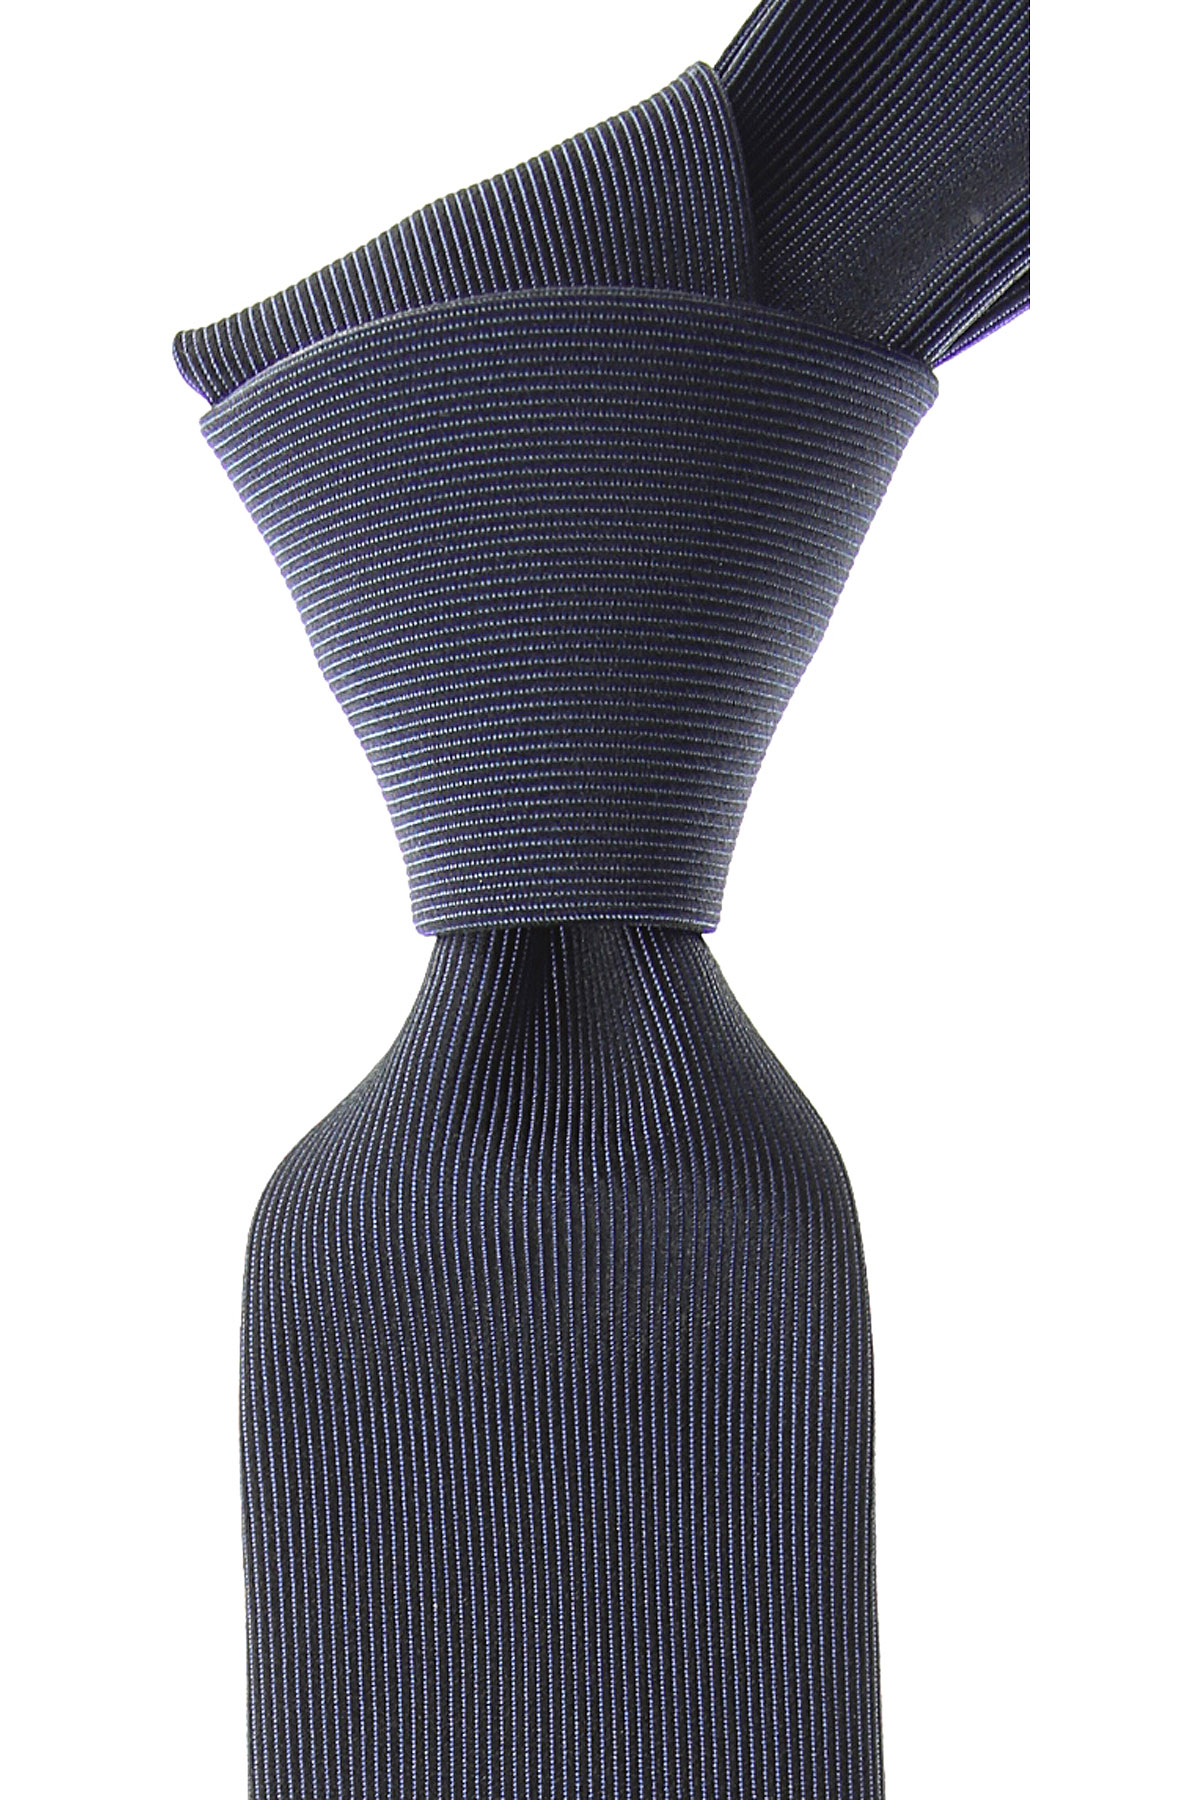 Ermenegildo_Zegna_Ties_On_Sale_navy_Silk_2019